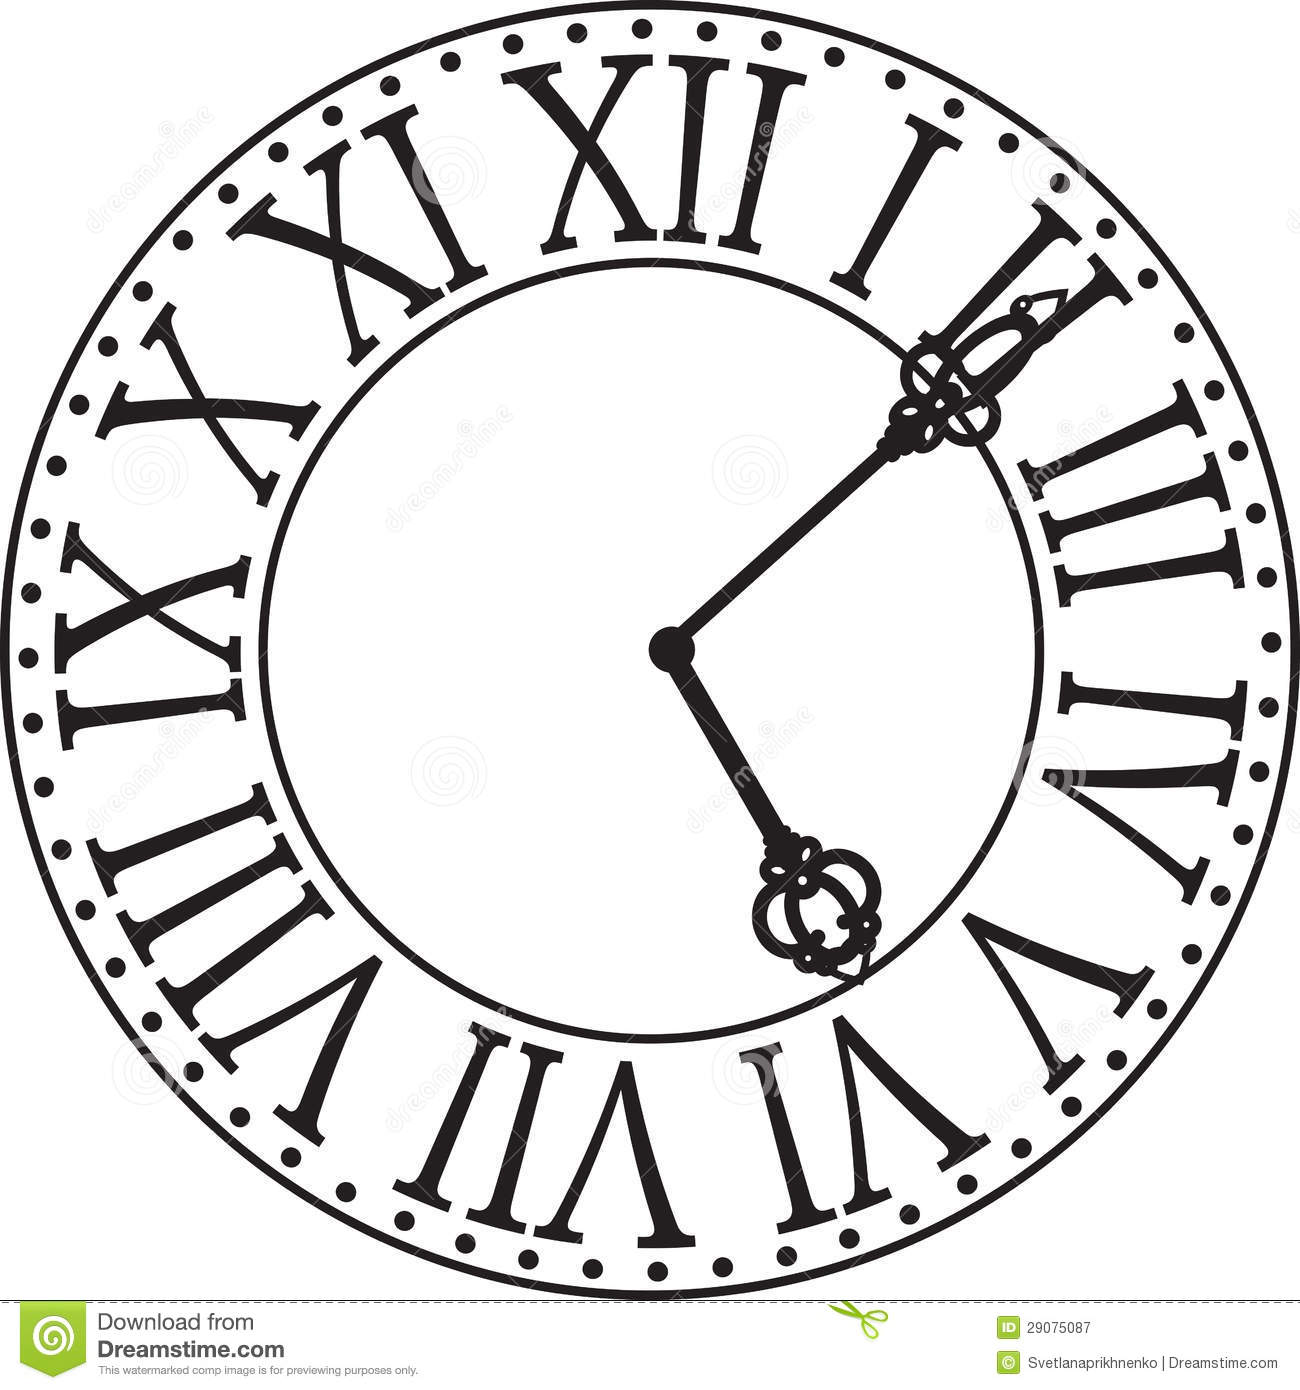 clock clipart black and white free - photo #42